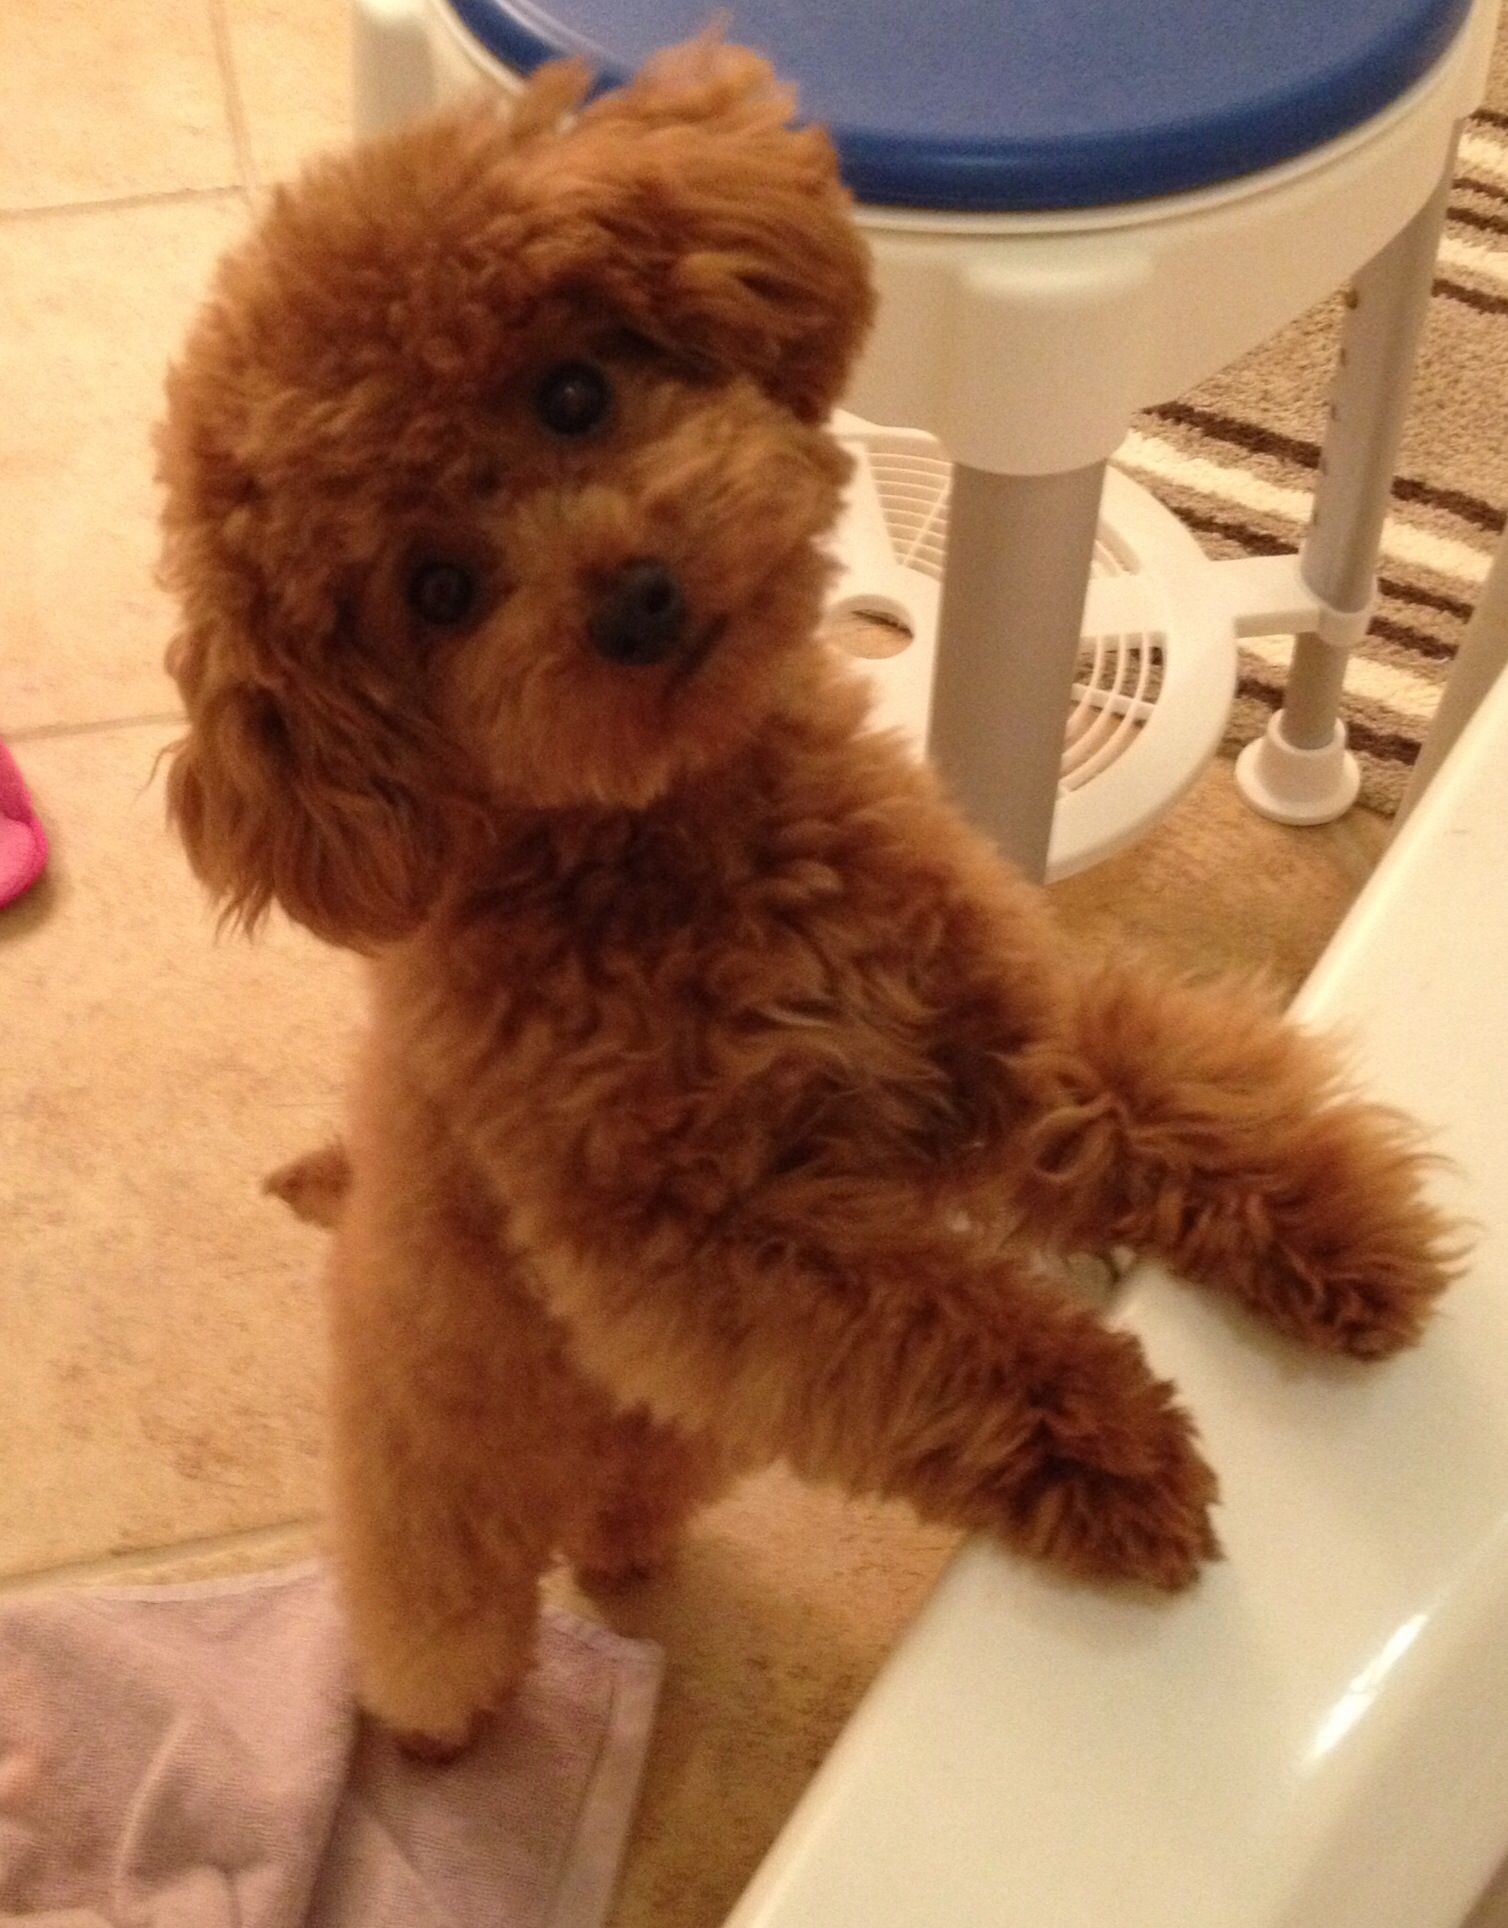 Red Toy Dogs : Alfie the red toy poodle months old ️ cuteness